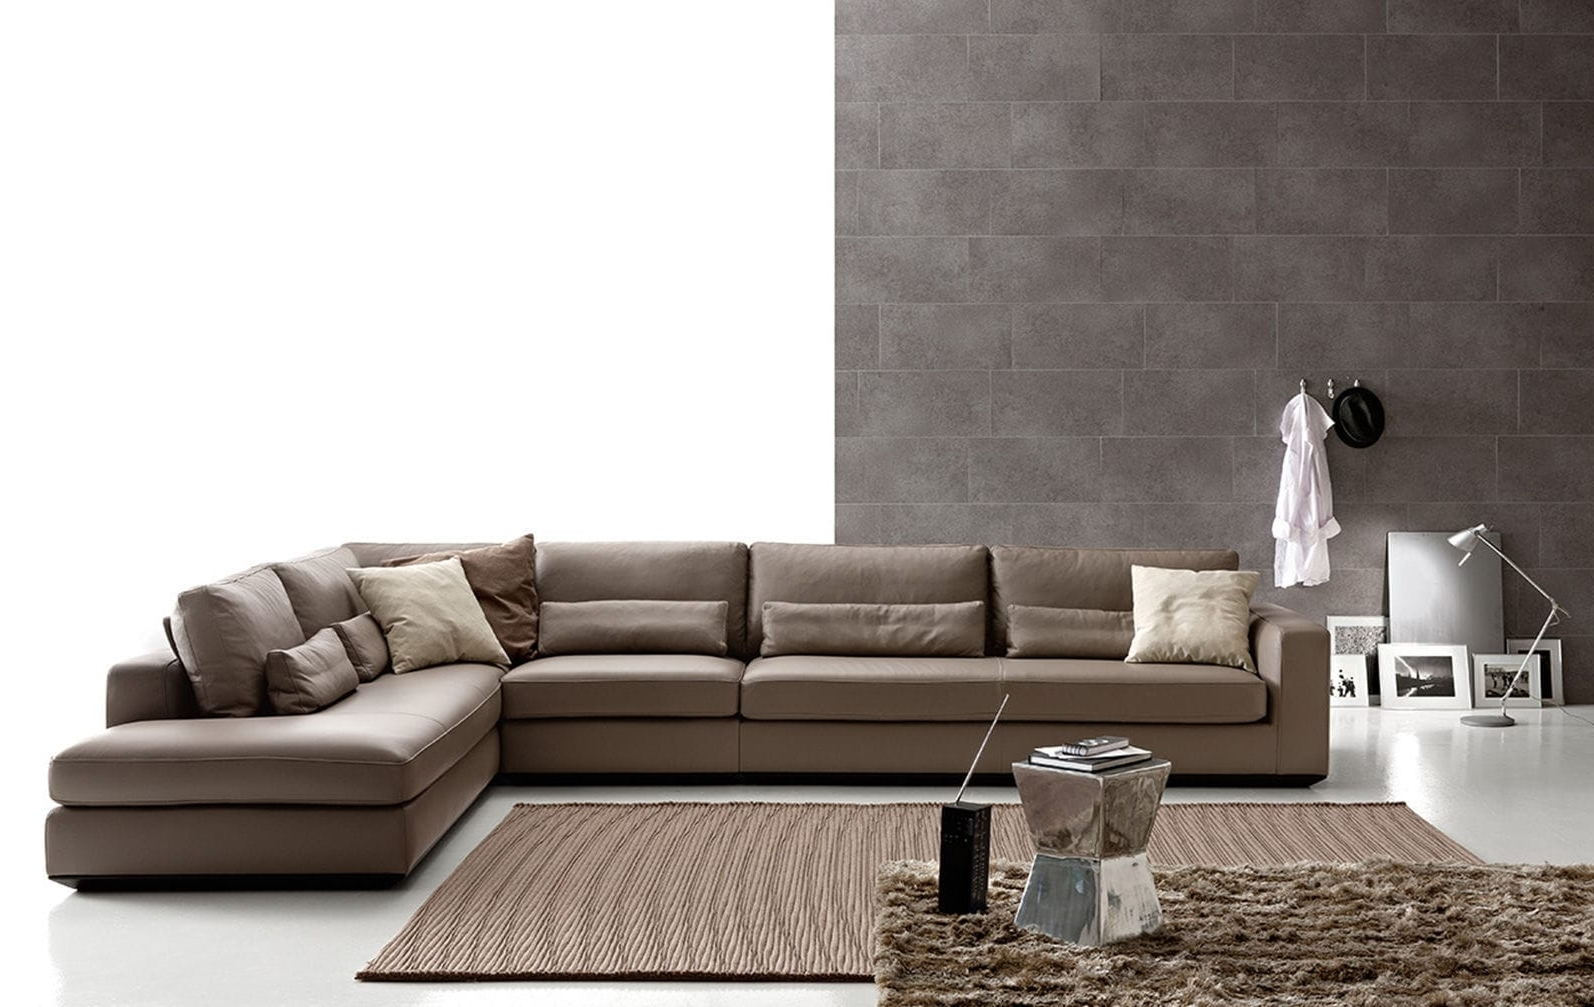 Trendy Sofa : Corner Sofa / Modular / Contemporary / Fabric Contemporary In Modular Corner Sofas (View 20 of 20)